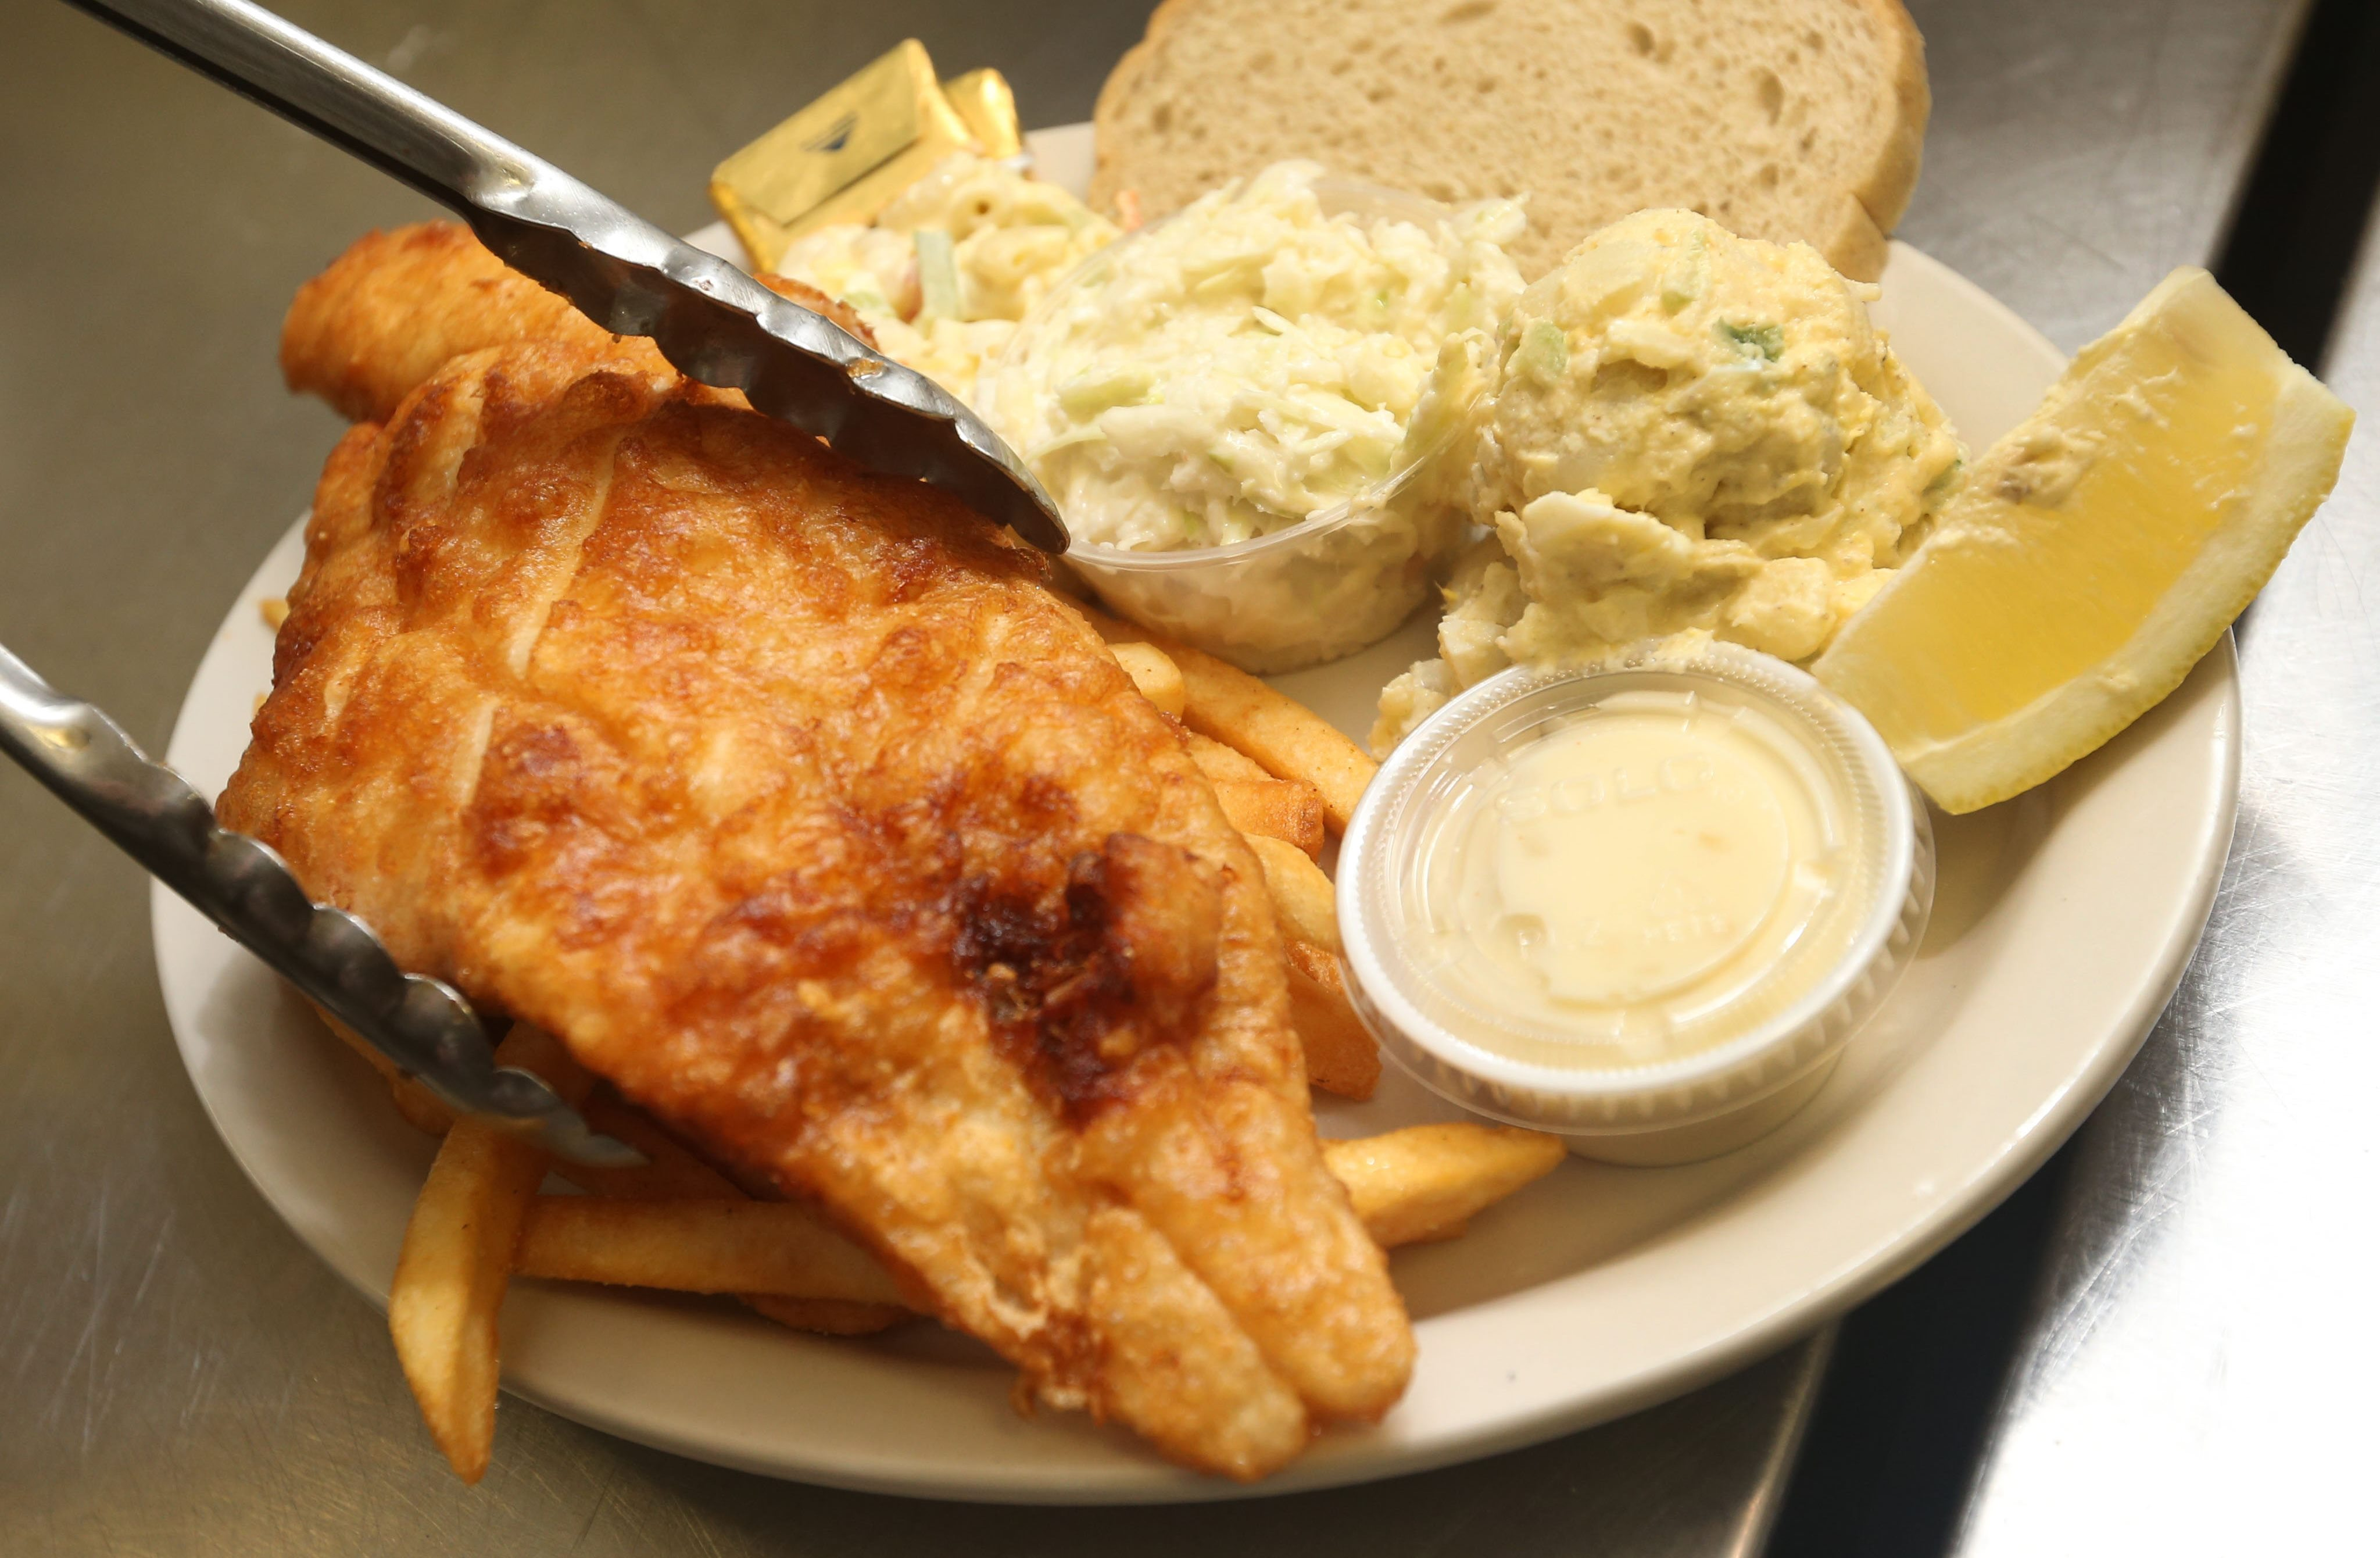 The fish fry at the Buffalo Irish Center in South Buffalo features beer-battered haddock with coleslaw, macaroni salad, potato salad, fries and rye bread. Haddock has not always been the fish of choice, though. (Sharon Cantillon/Buffalo News)